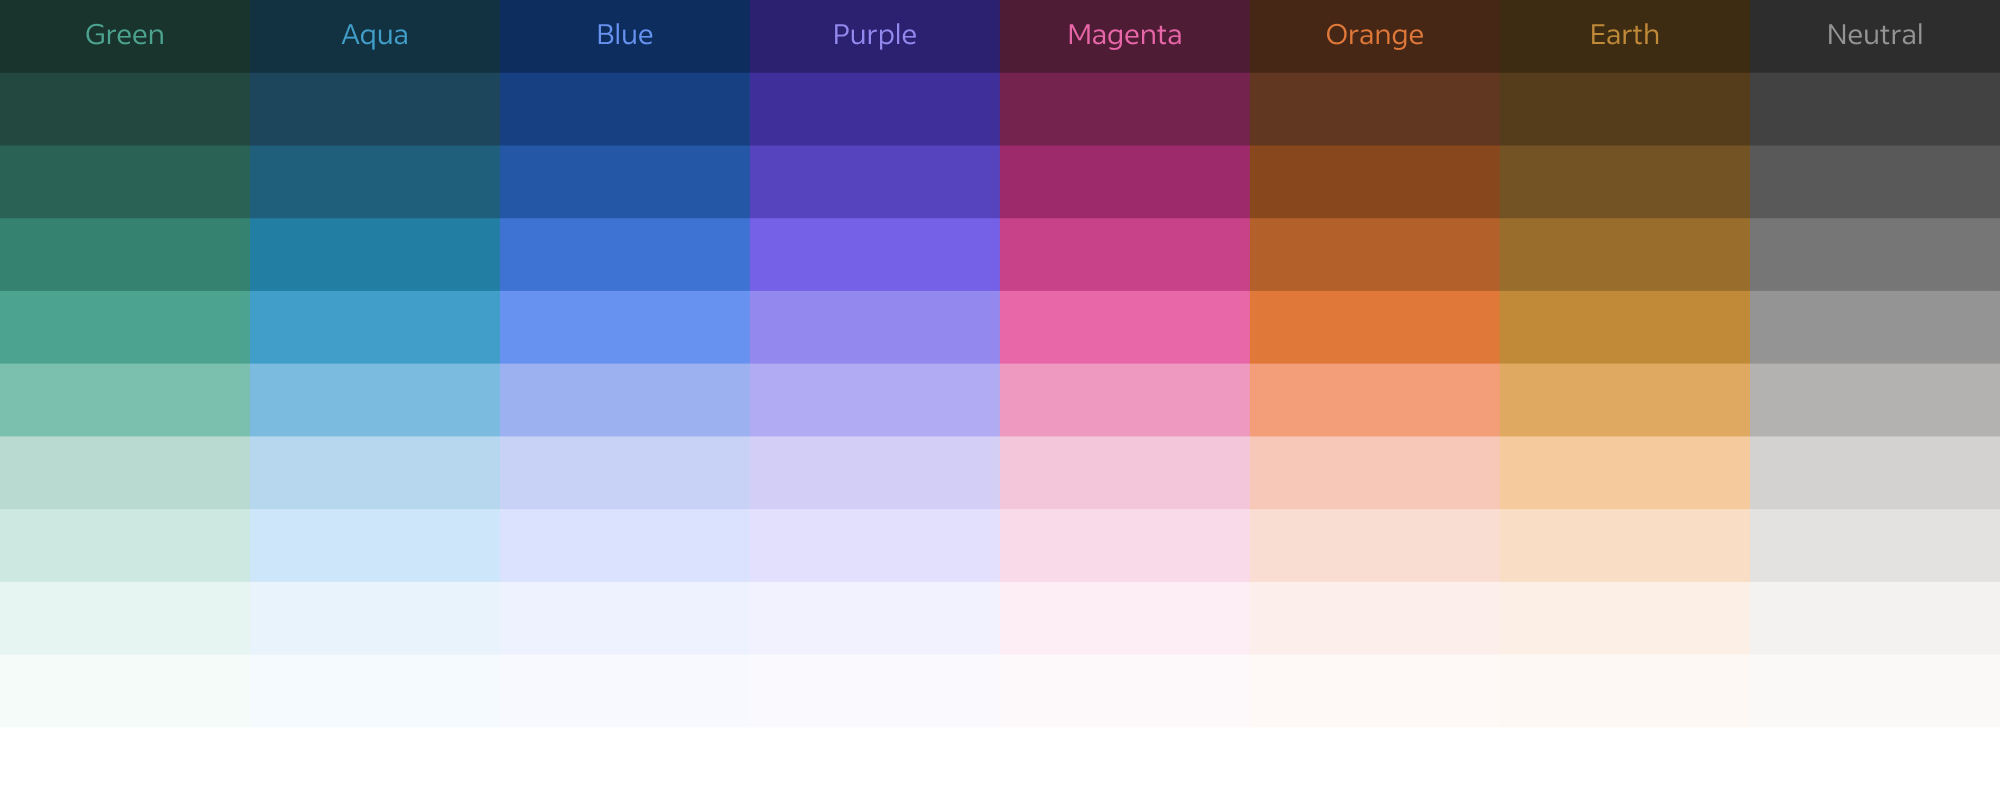 Our Expressive color palette is White plus 10 hues each of Green, Aqua, Blue, Purple, Magenta, Orange, Earth, and Neutral.